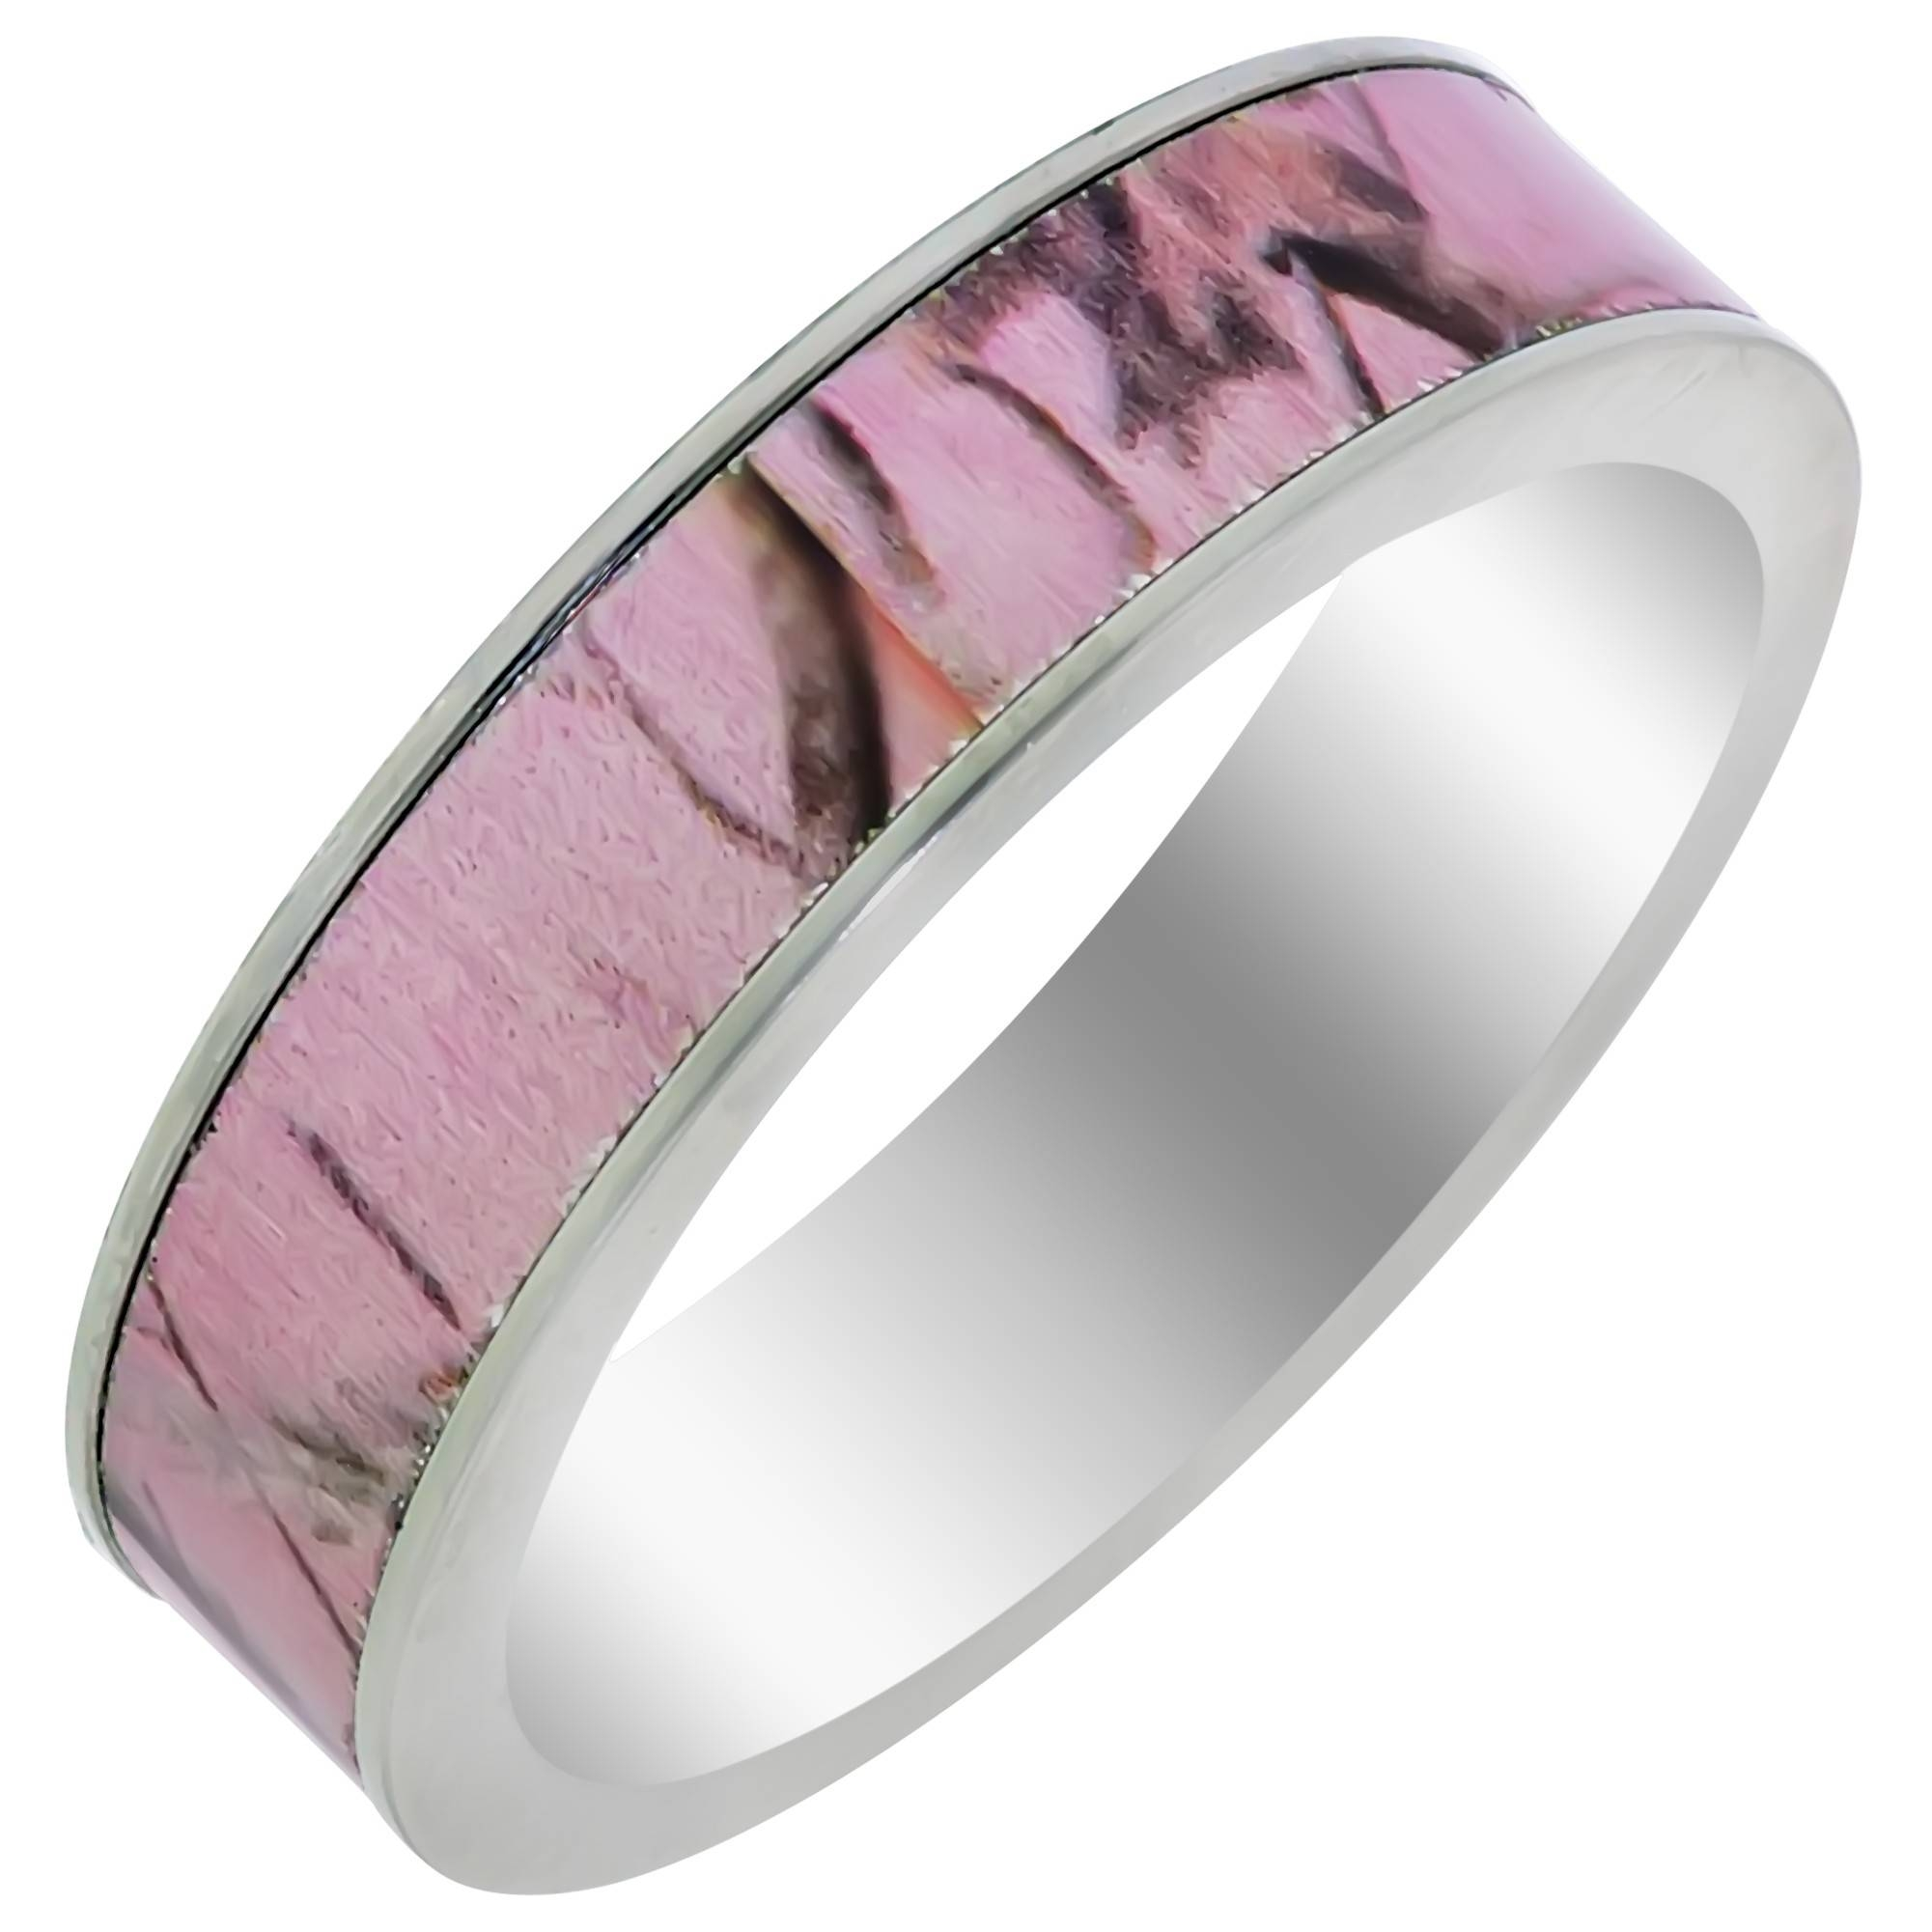 Ladies Pink Camouflage Wedding Band In Titanium (5mm) Regarding Camo Wedding Rings With Diamonds (View 11 of 15)